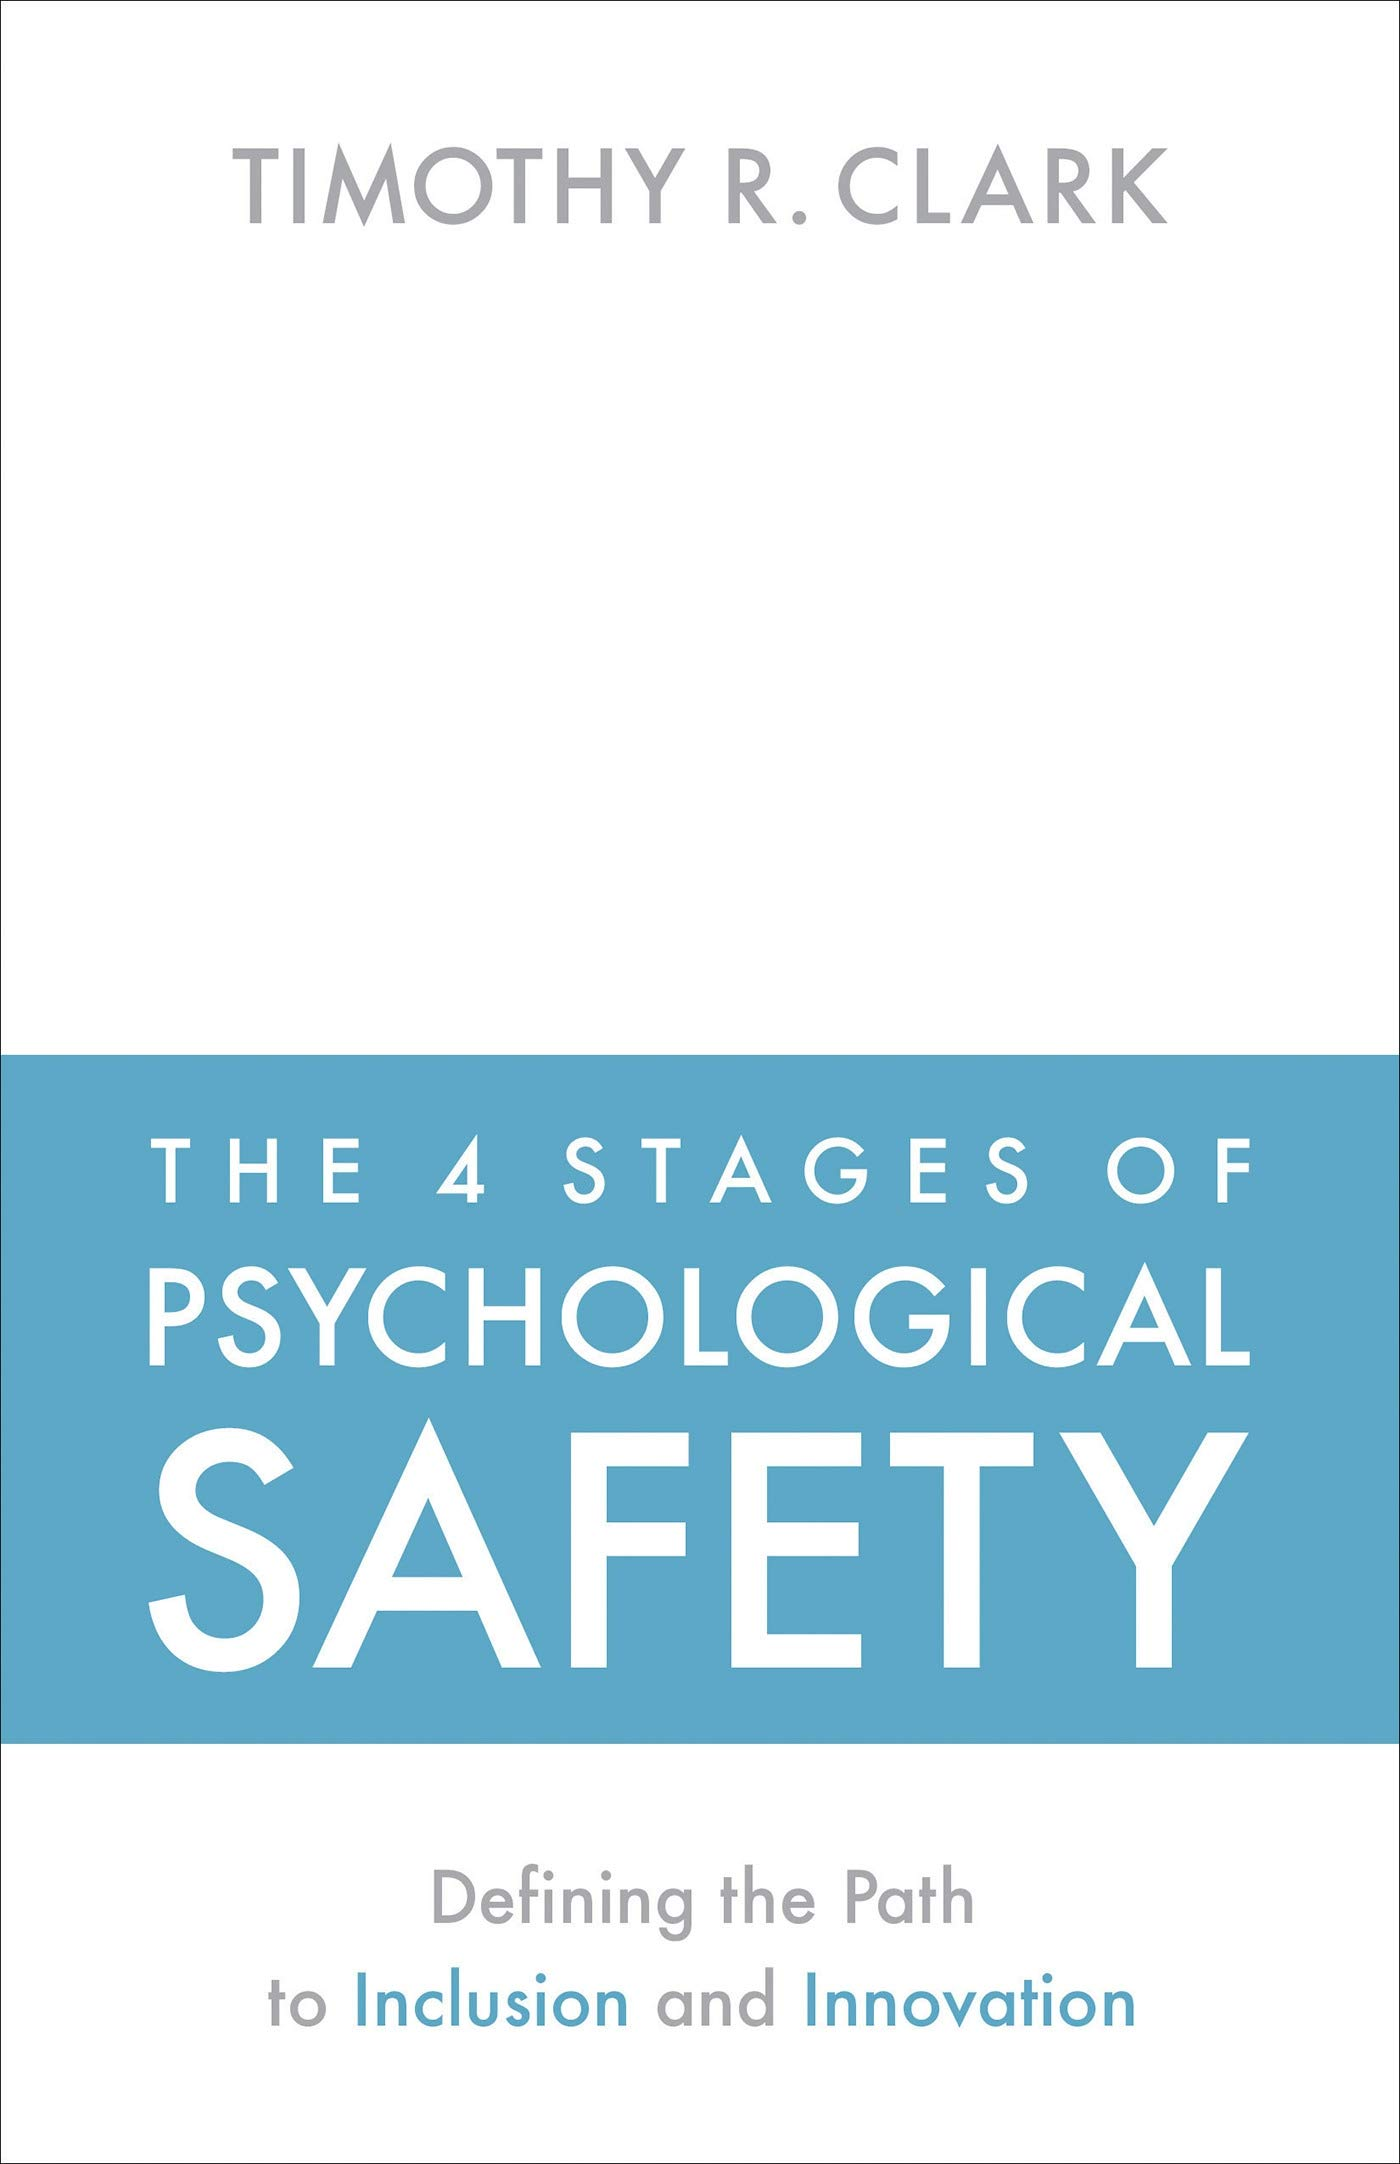 Image OfThe 4 Stages Of Psychological Safety: Defining The Path To Inclusion And Innovation